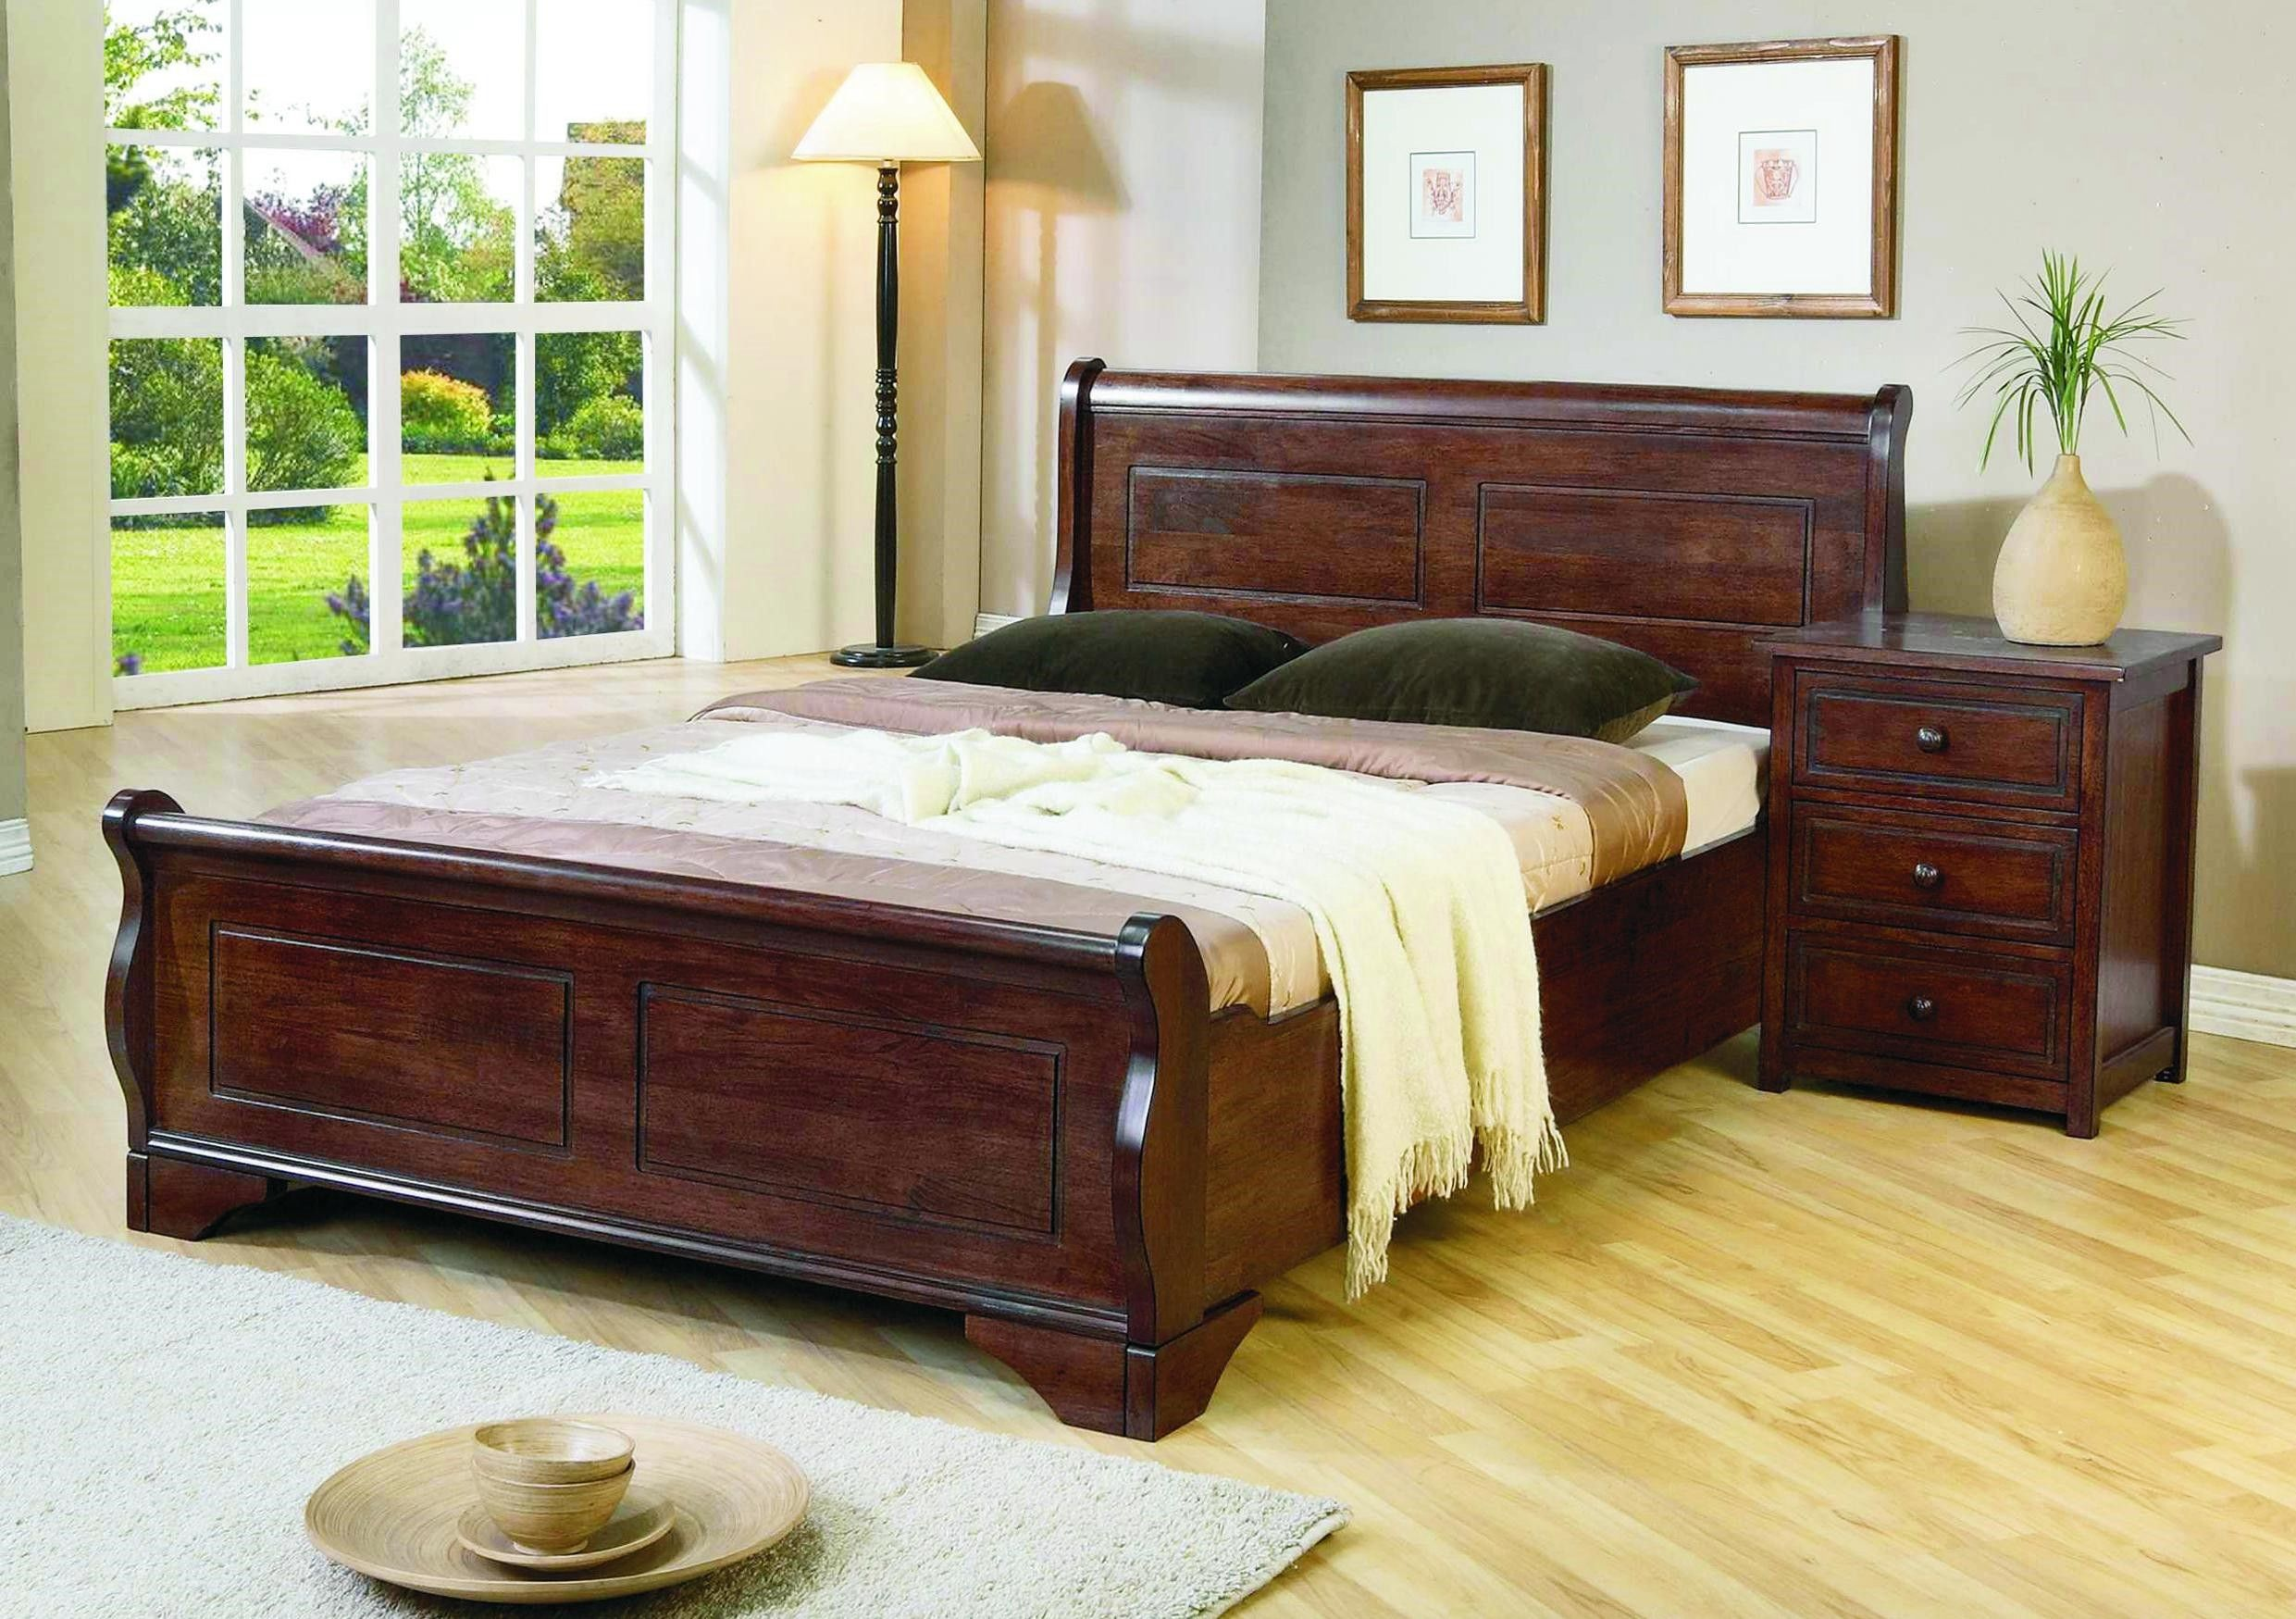 king bed frames and headboards | Double click on above image to ...